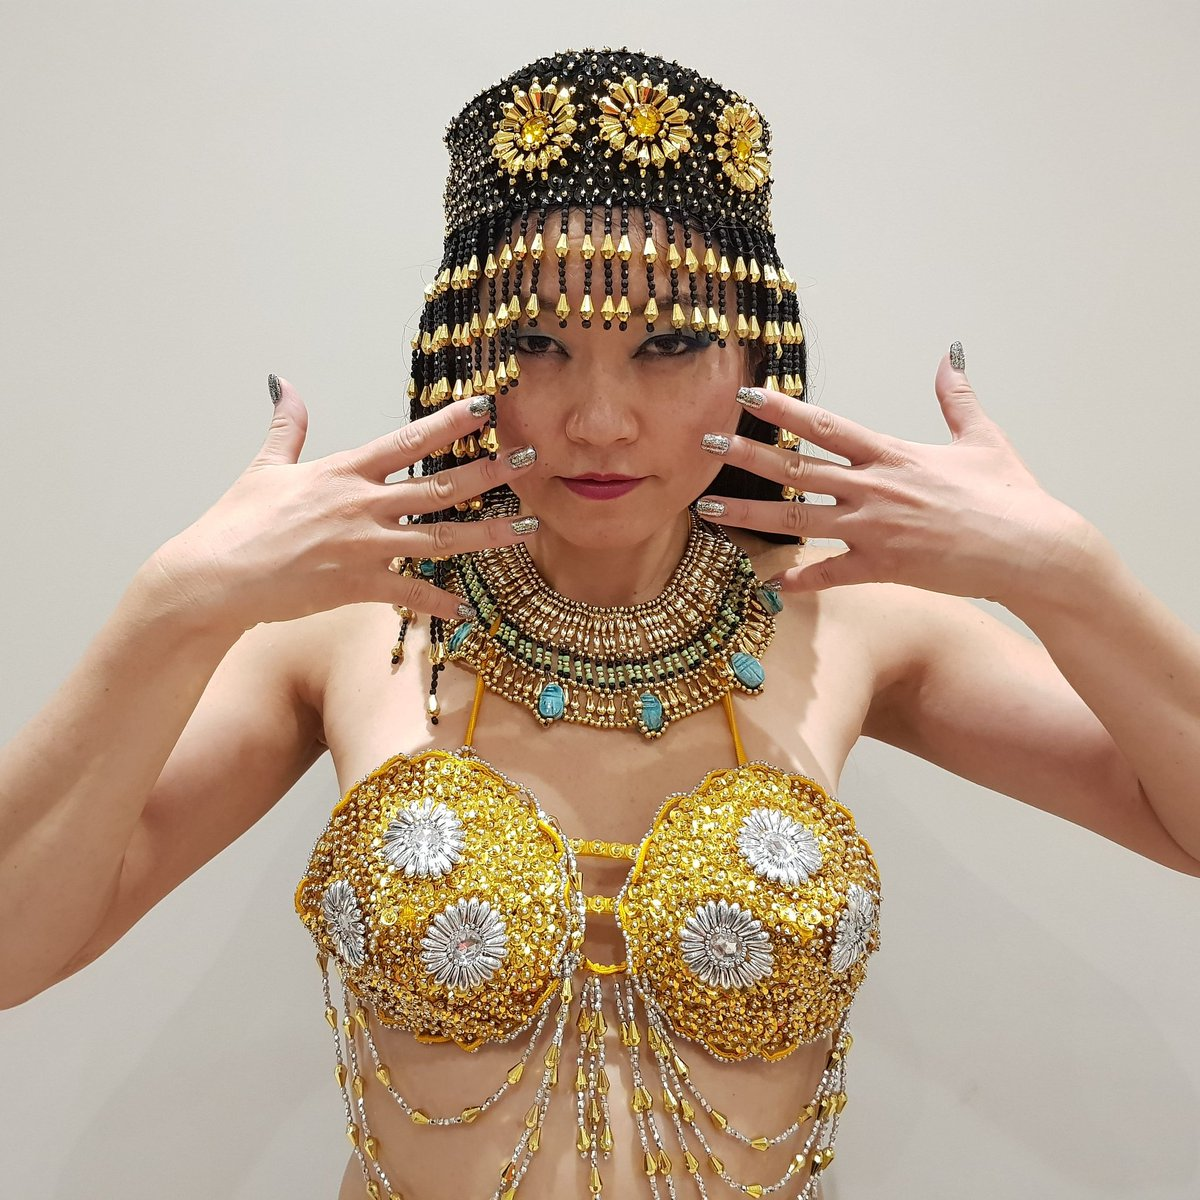 #cleopatra style #costume with matching  #goldnails #shinynails #oriental #goddess #performer #クレオパトラ #sequins #スパンコール #パフォーマー https://t.co/xQzVZg9bCc